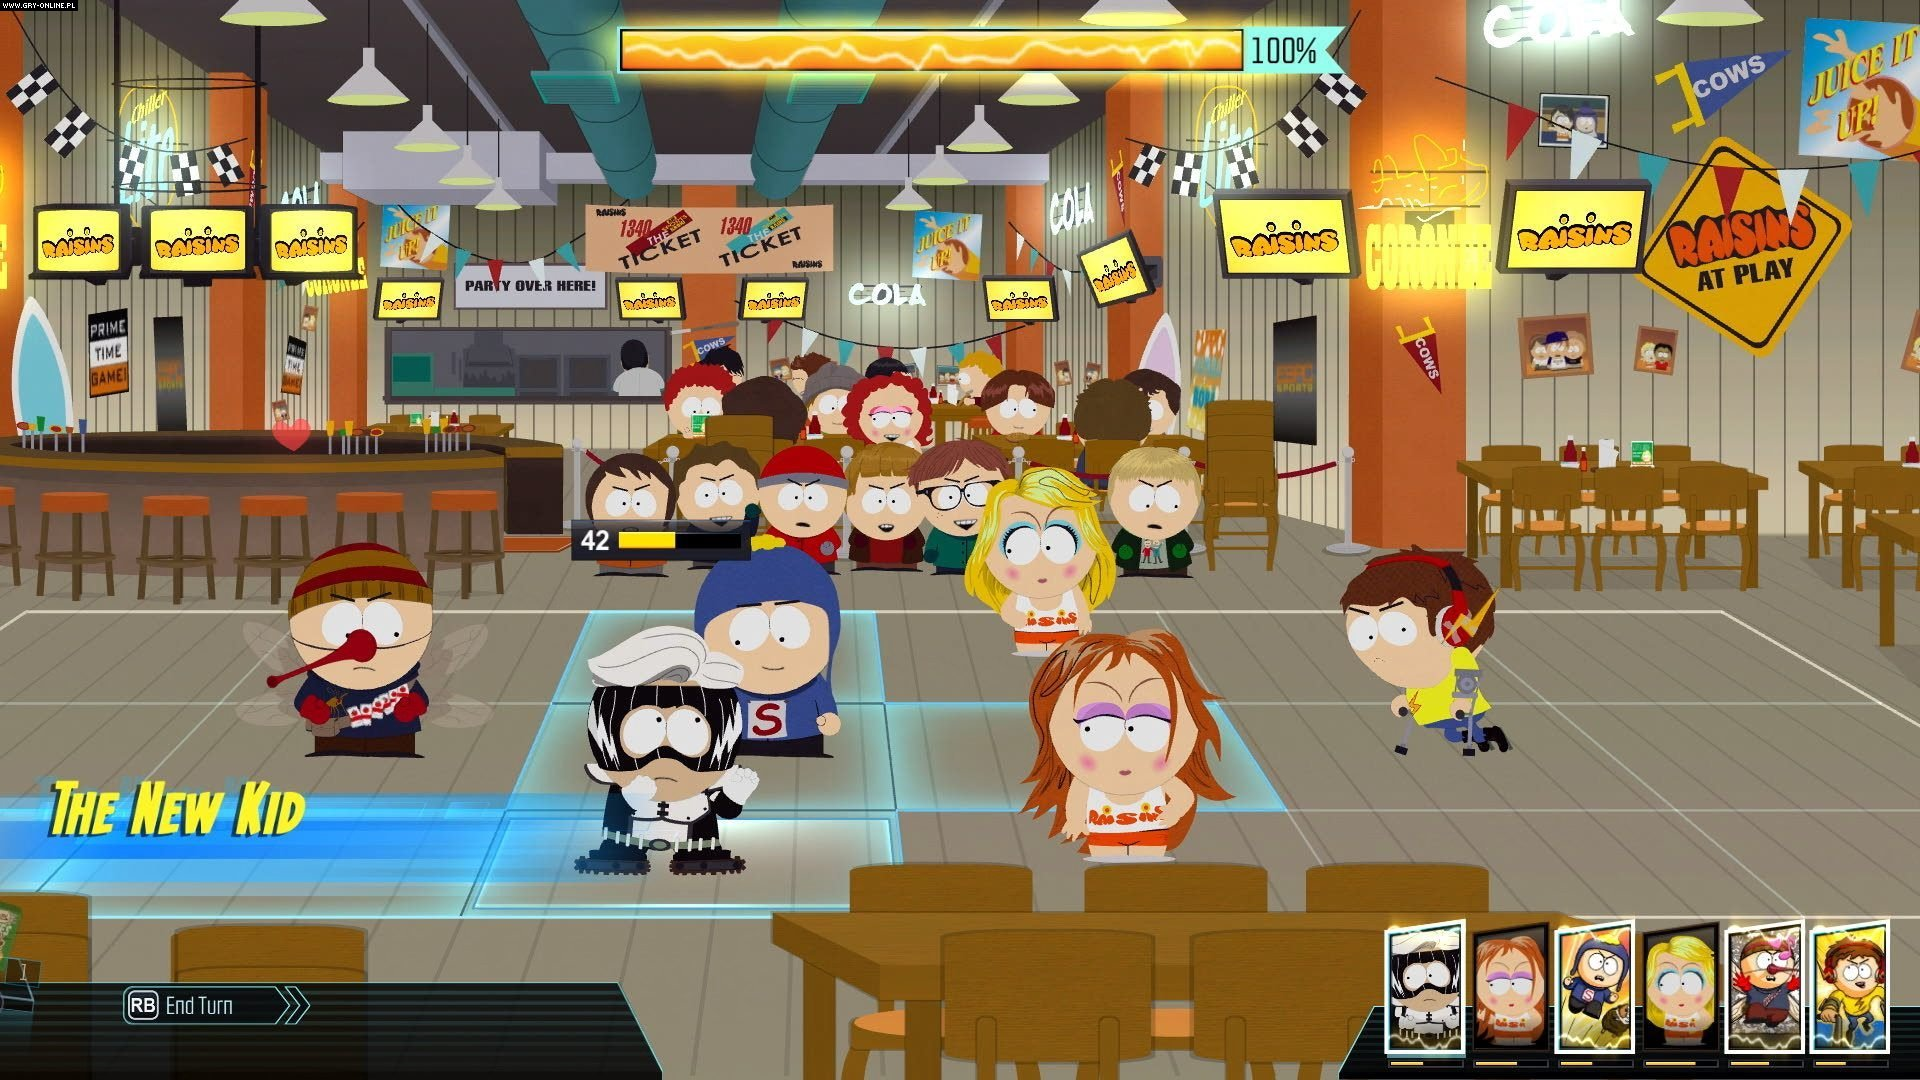 South Park: The Fractured But Whole PC, PS4, XONE, Switch Games Image 10/47, Ubisoft